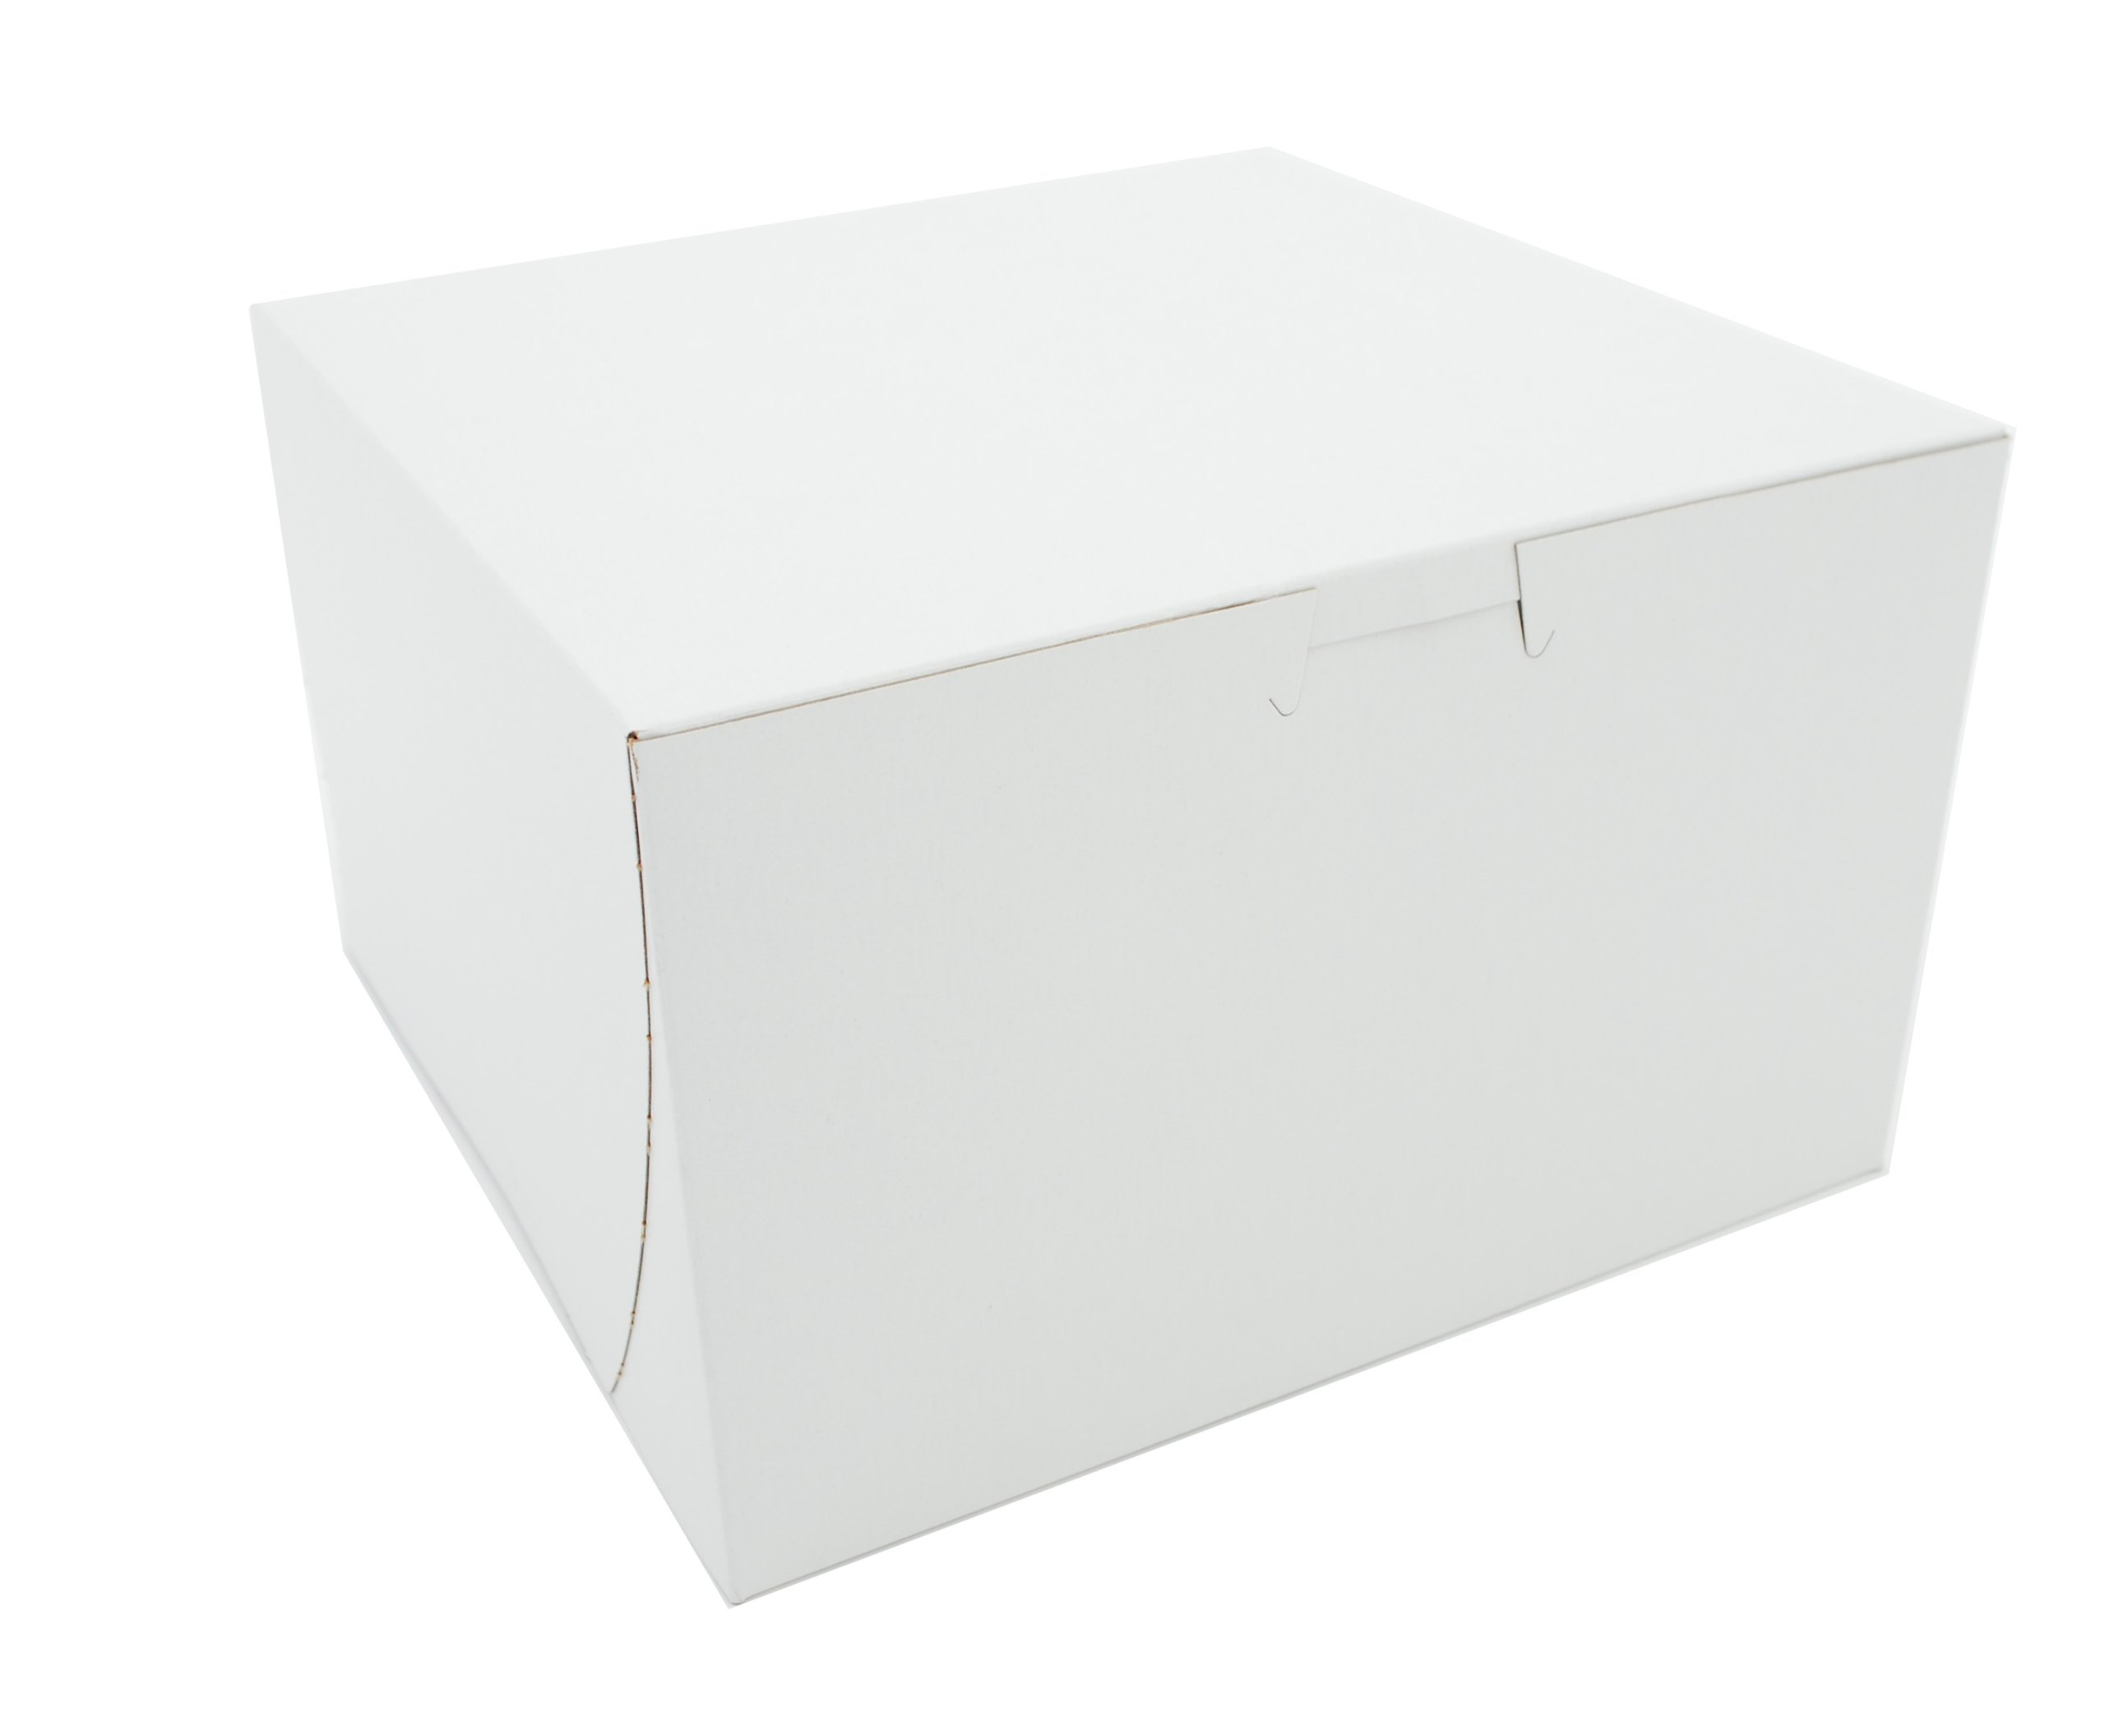 Southern Champion Tray 09455 Premium Clay Coated Kraft Paperboard White Non-Window Lock Corner Bakery Box, 8'' Length x 8'' Width x 5'' Height (Case of 100) by Southern Champion Tray